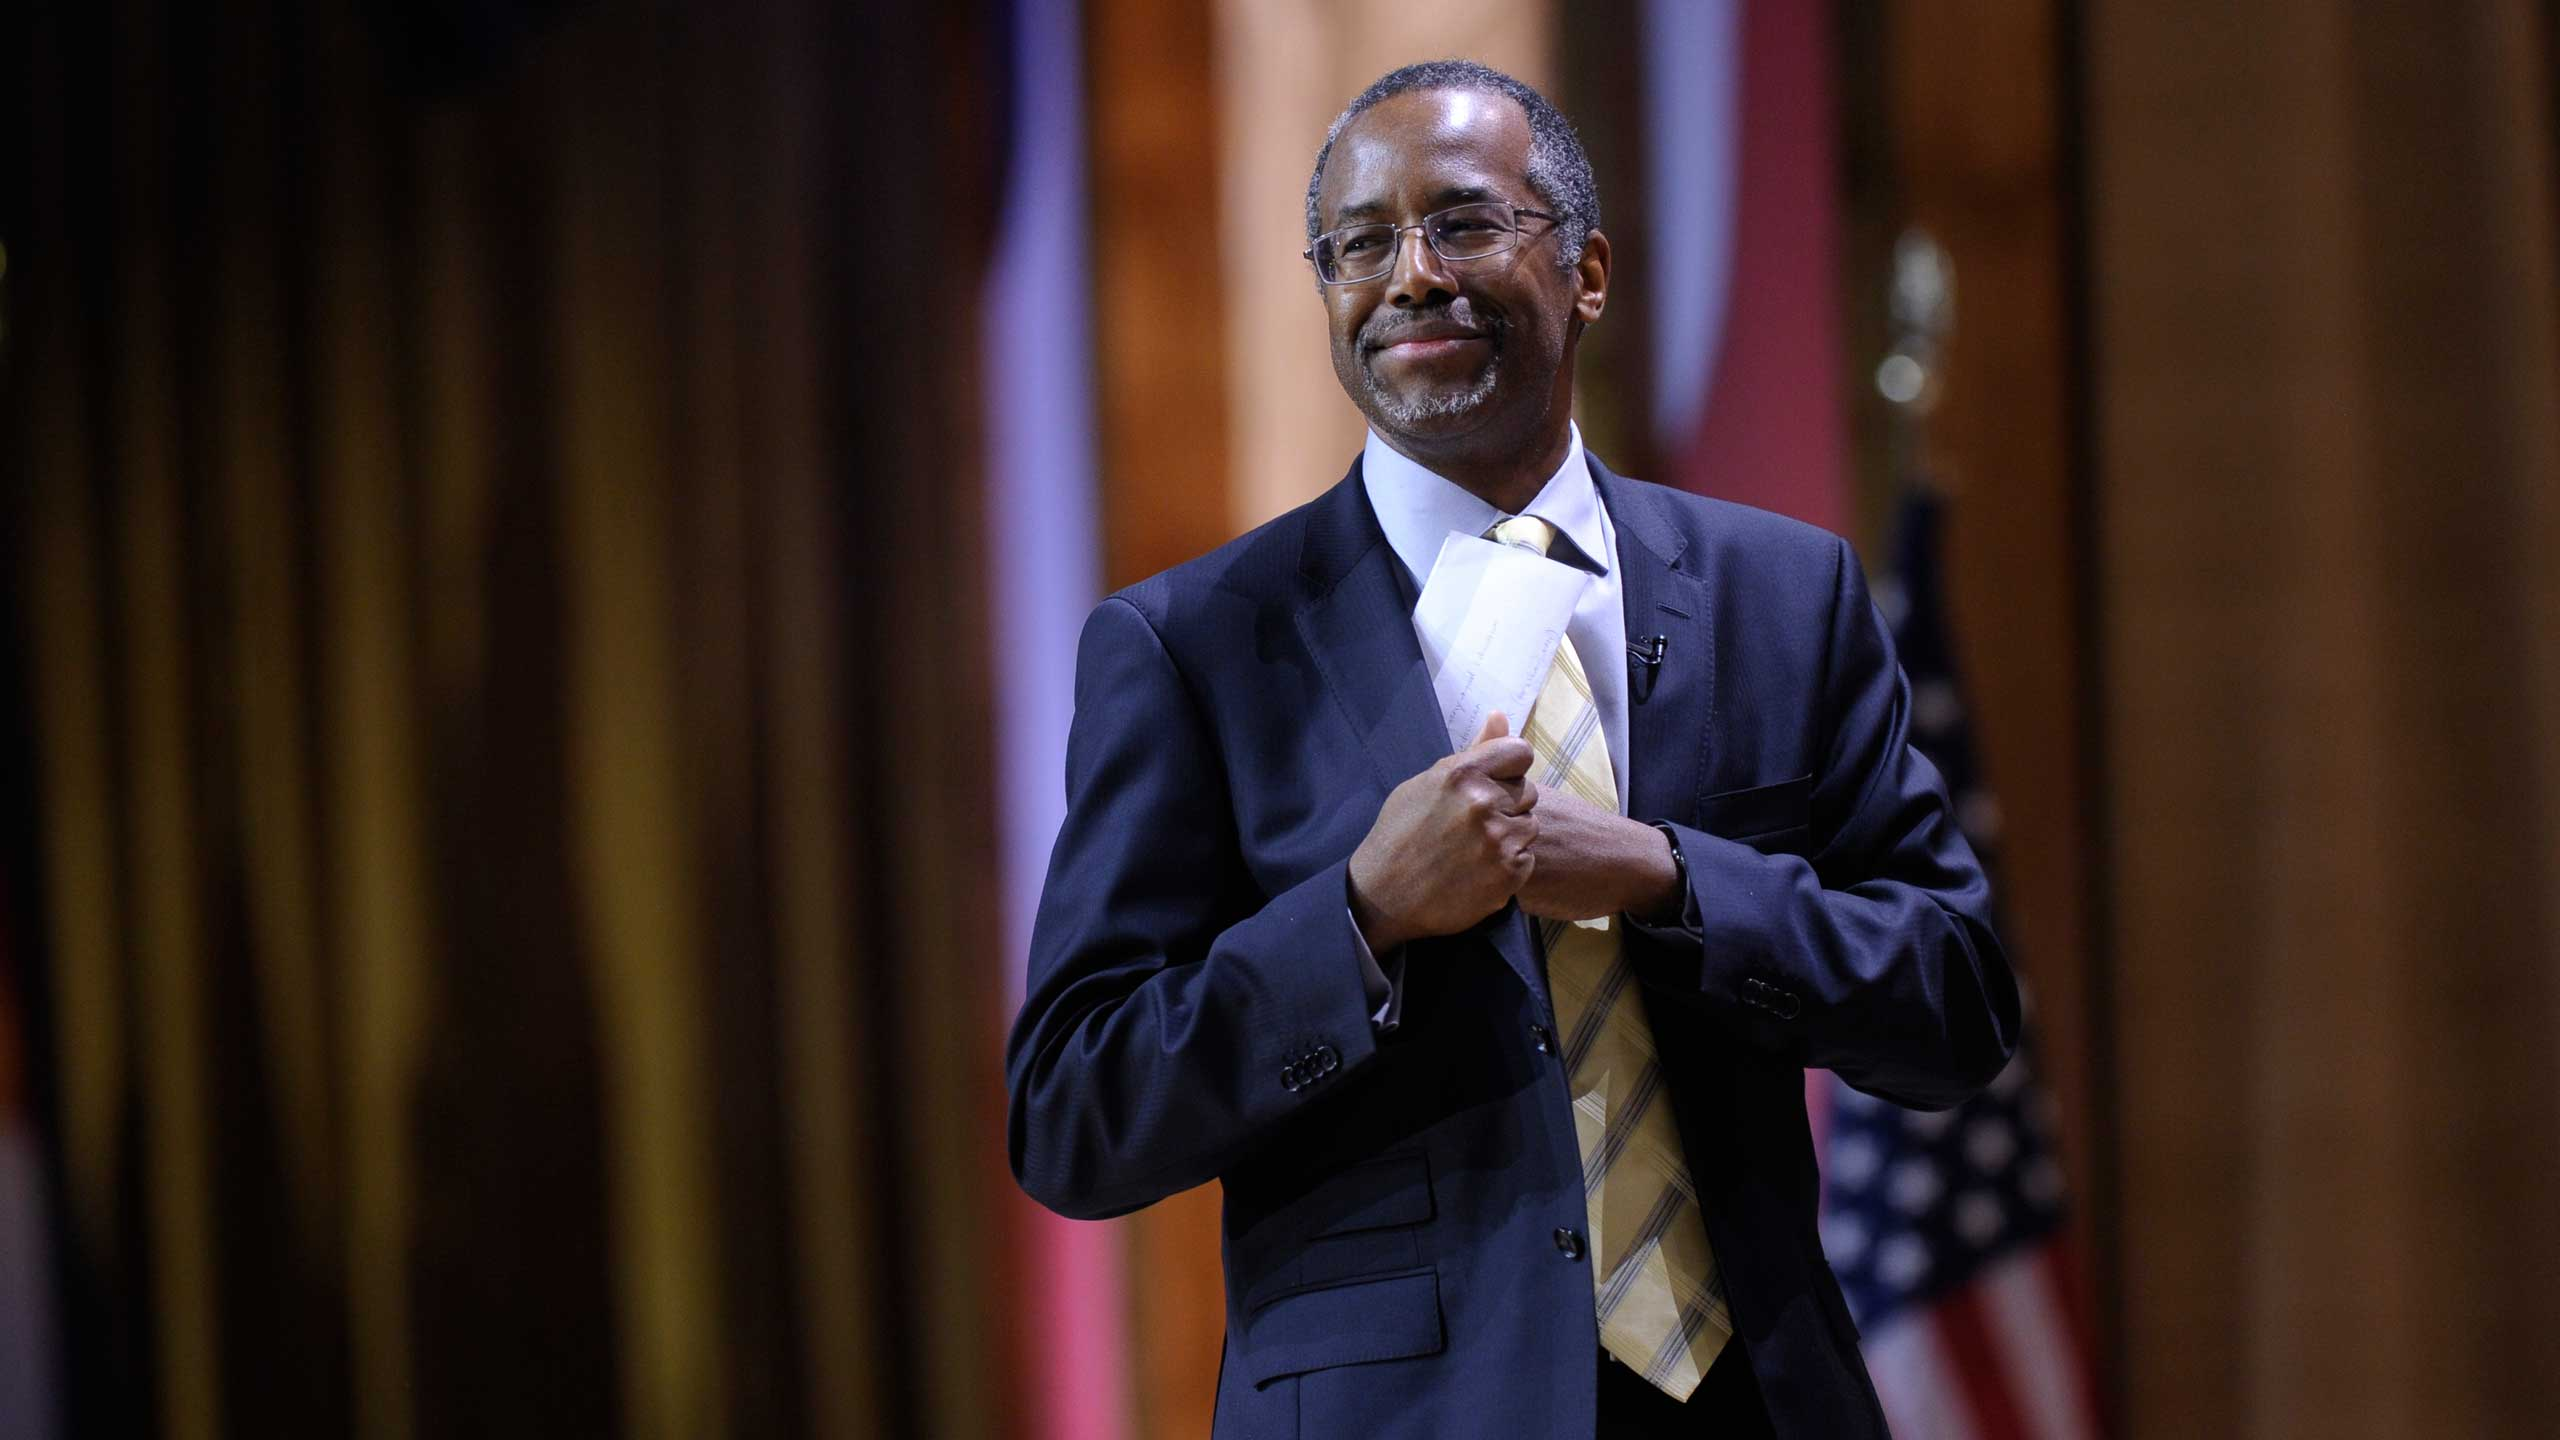 <b>Ben Carson</b>Ben Carson at the Conservative Political Action Committee annual conference on March 8, 2014.